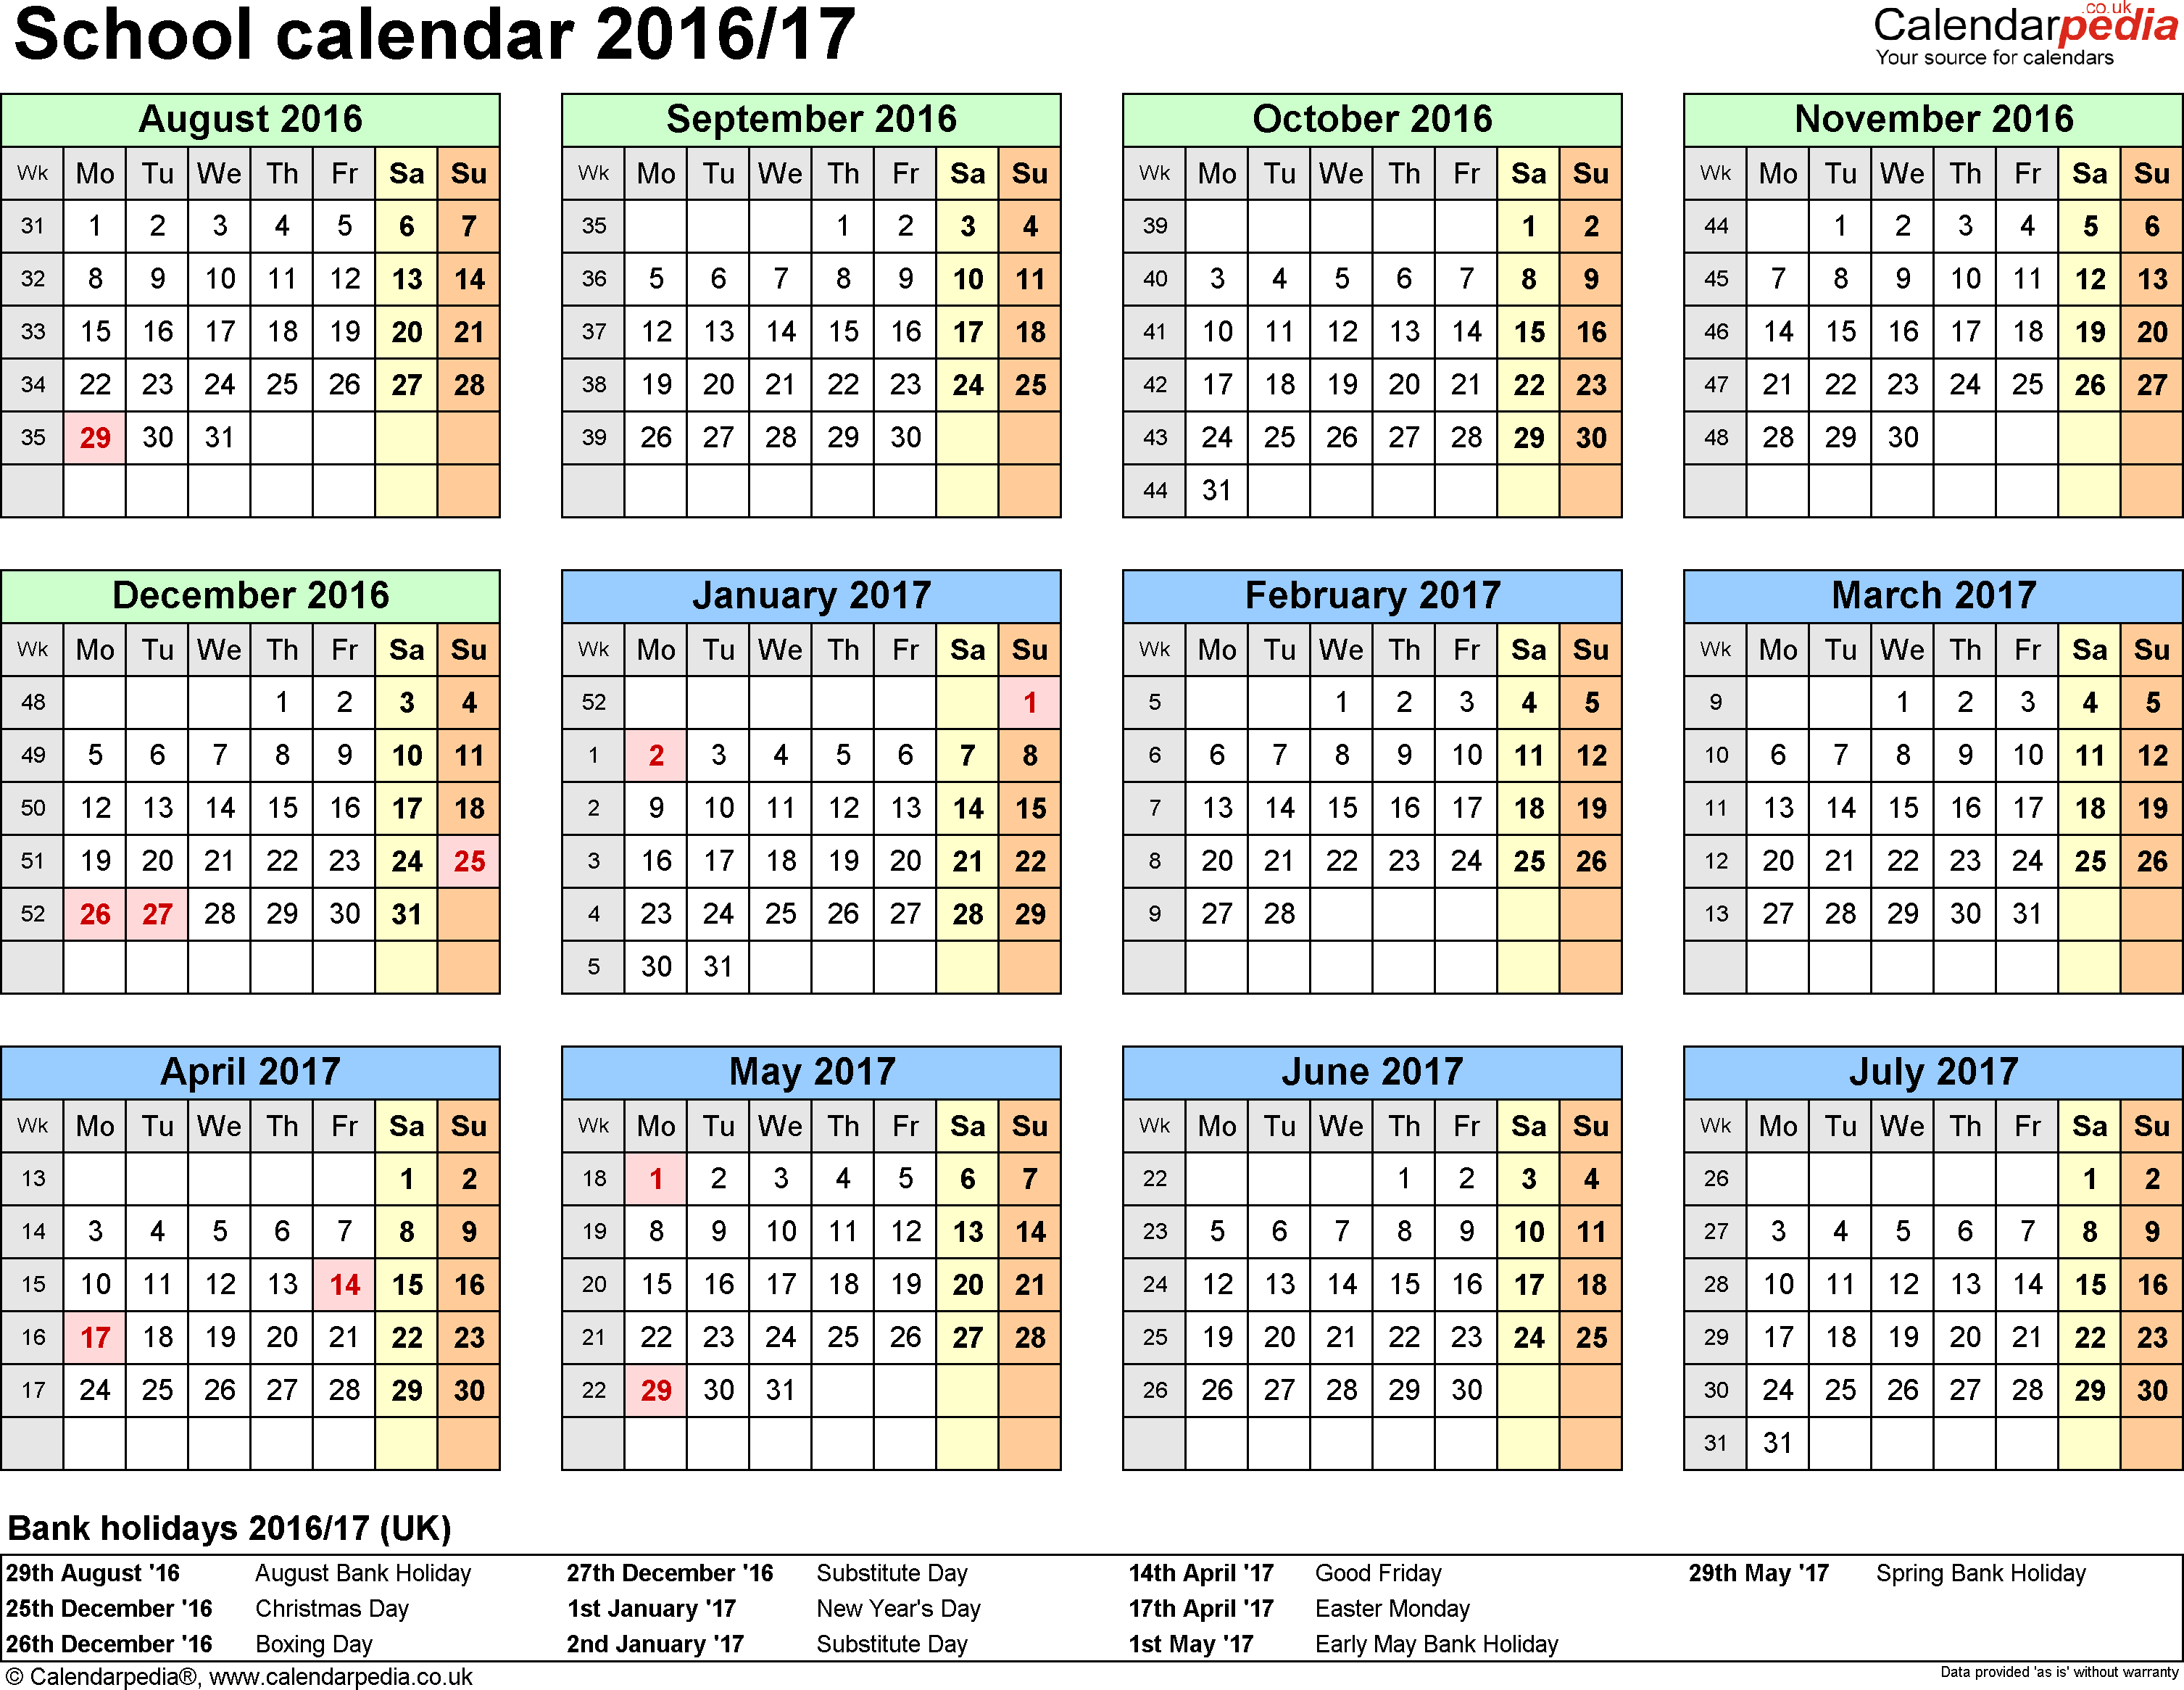 Template 4: School year calendars 2016/17 as Excel template, year overview, 1 page